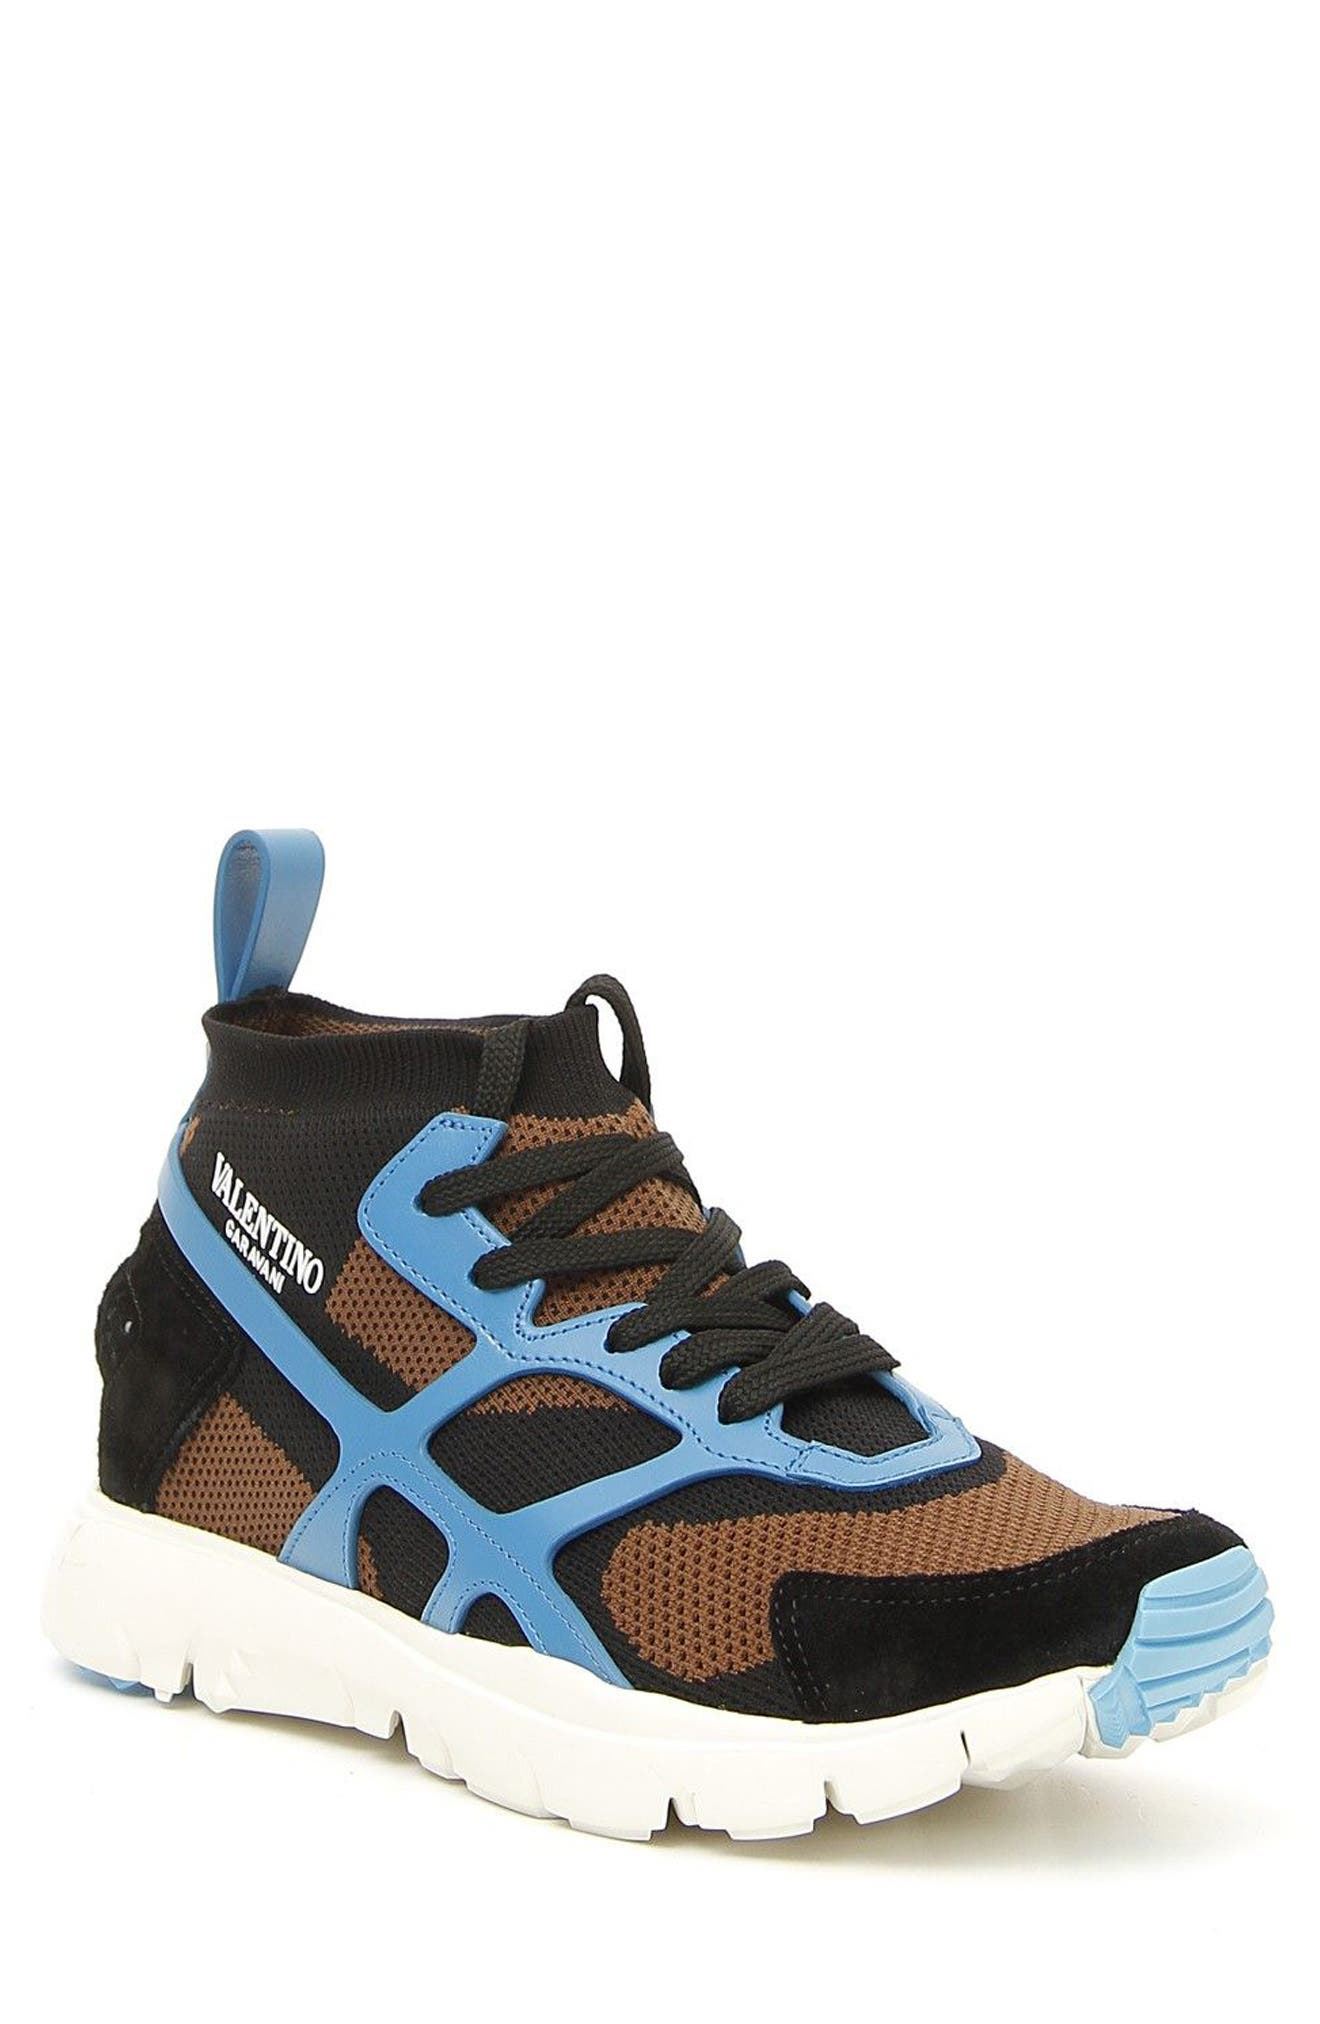 Sound High Sneaker,                             Main thumbnail 1, color,                             Army Green/ Nero/ Pool Blue